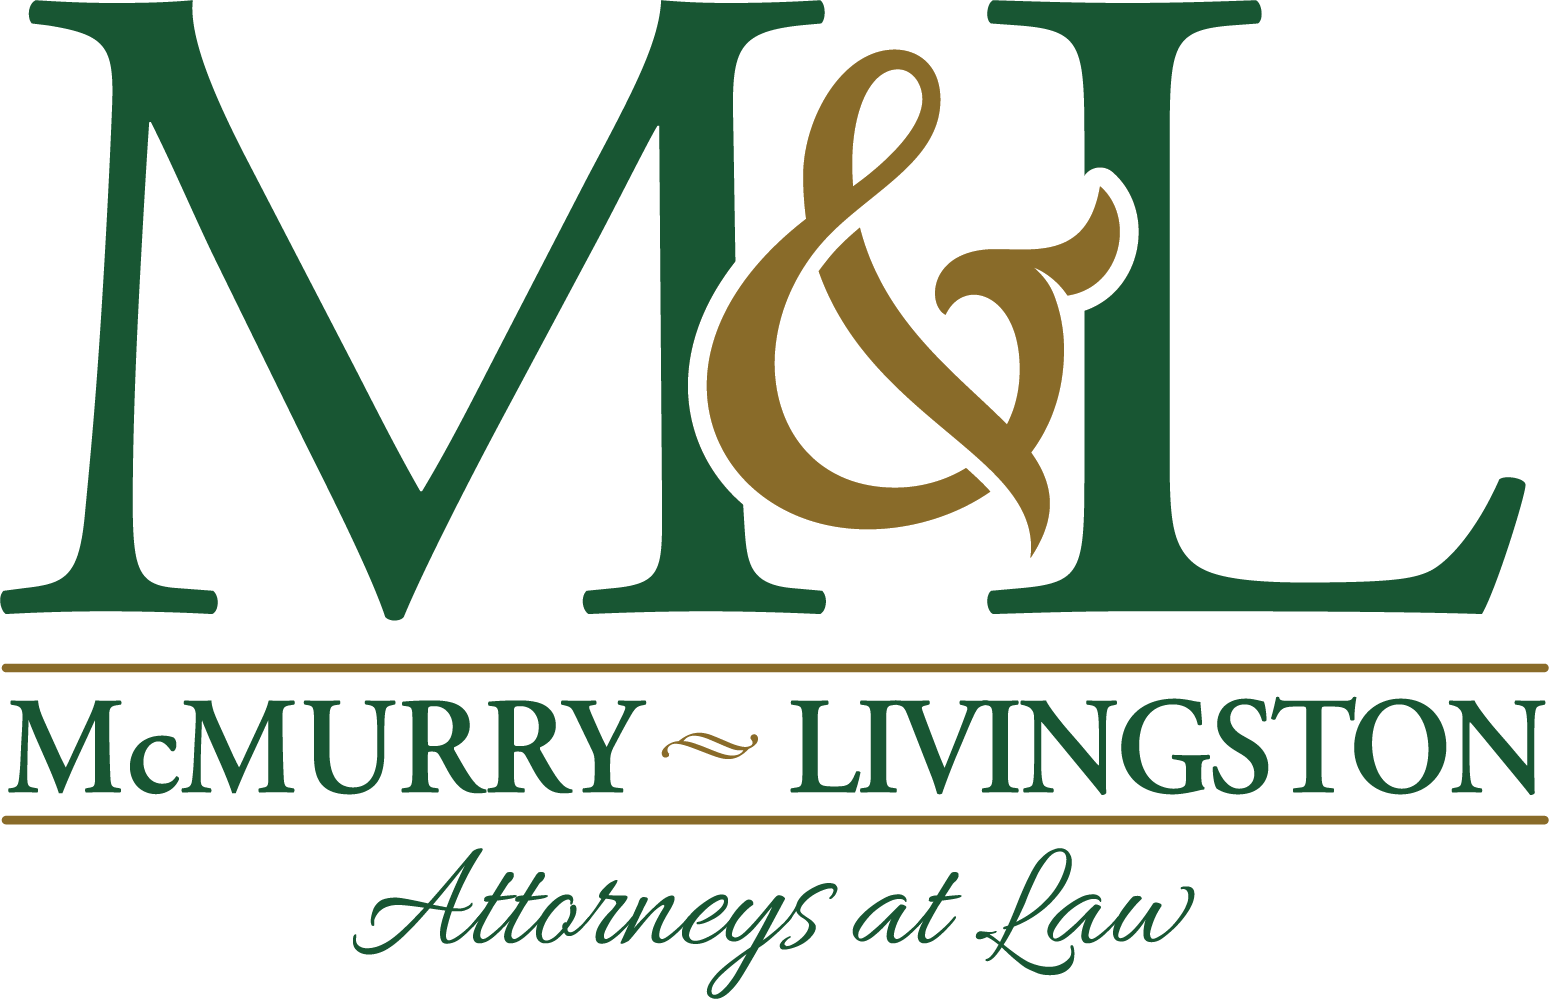 McMurry & Livingston, PLLC